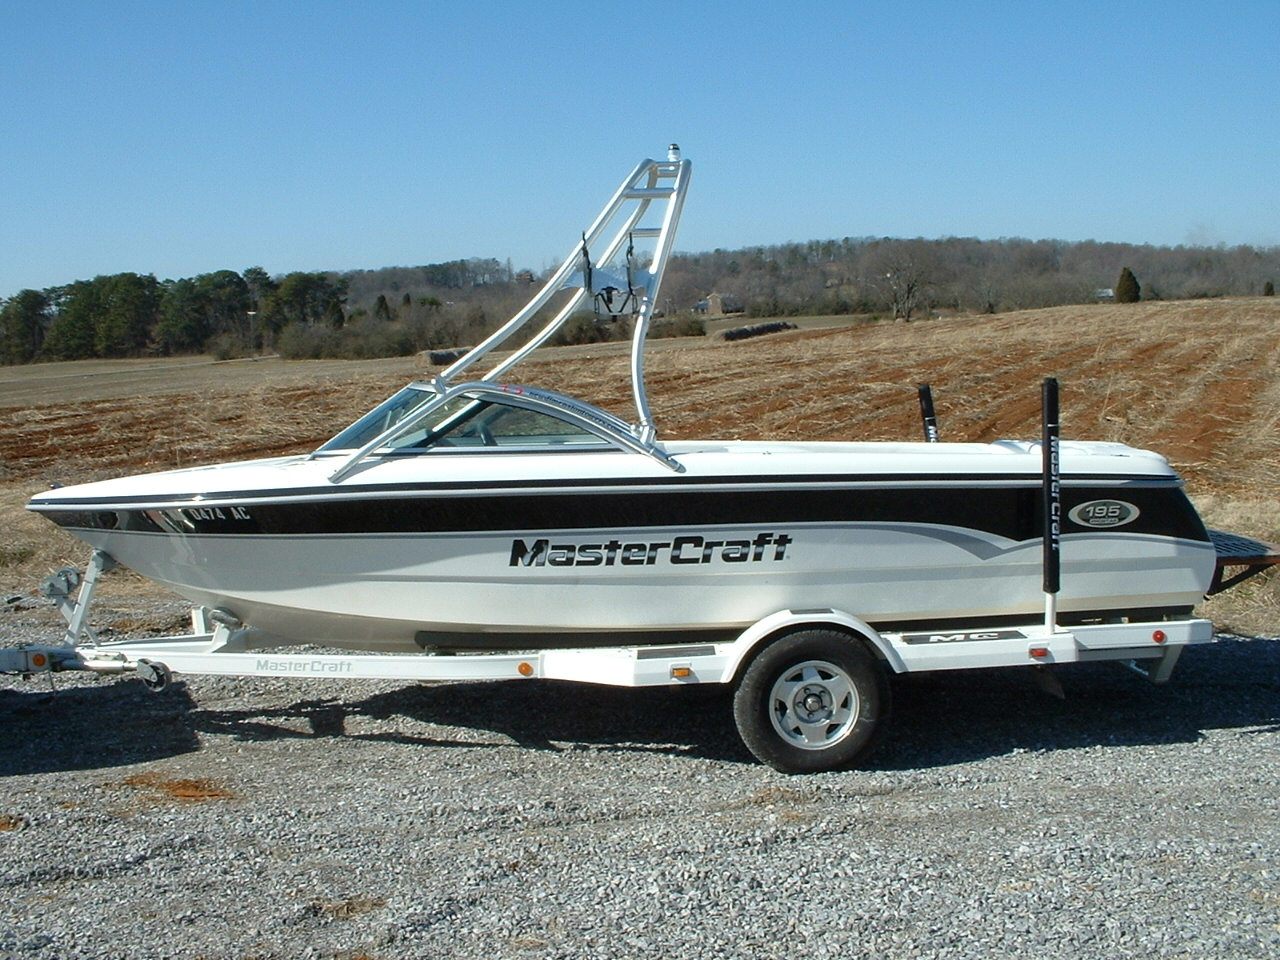 main view of 00 - 01 mastercraft prostar 195 with new dimension towers wakeboard tower